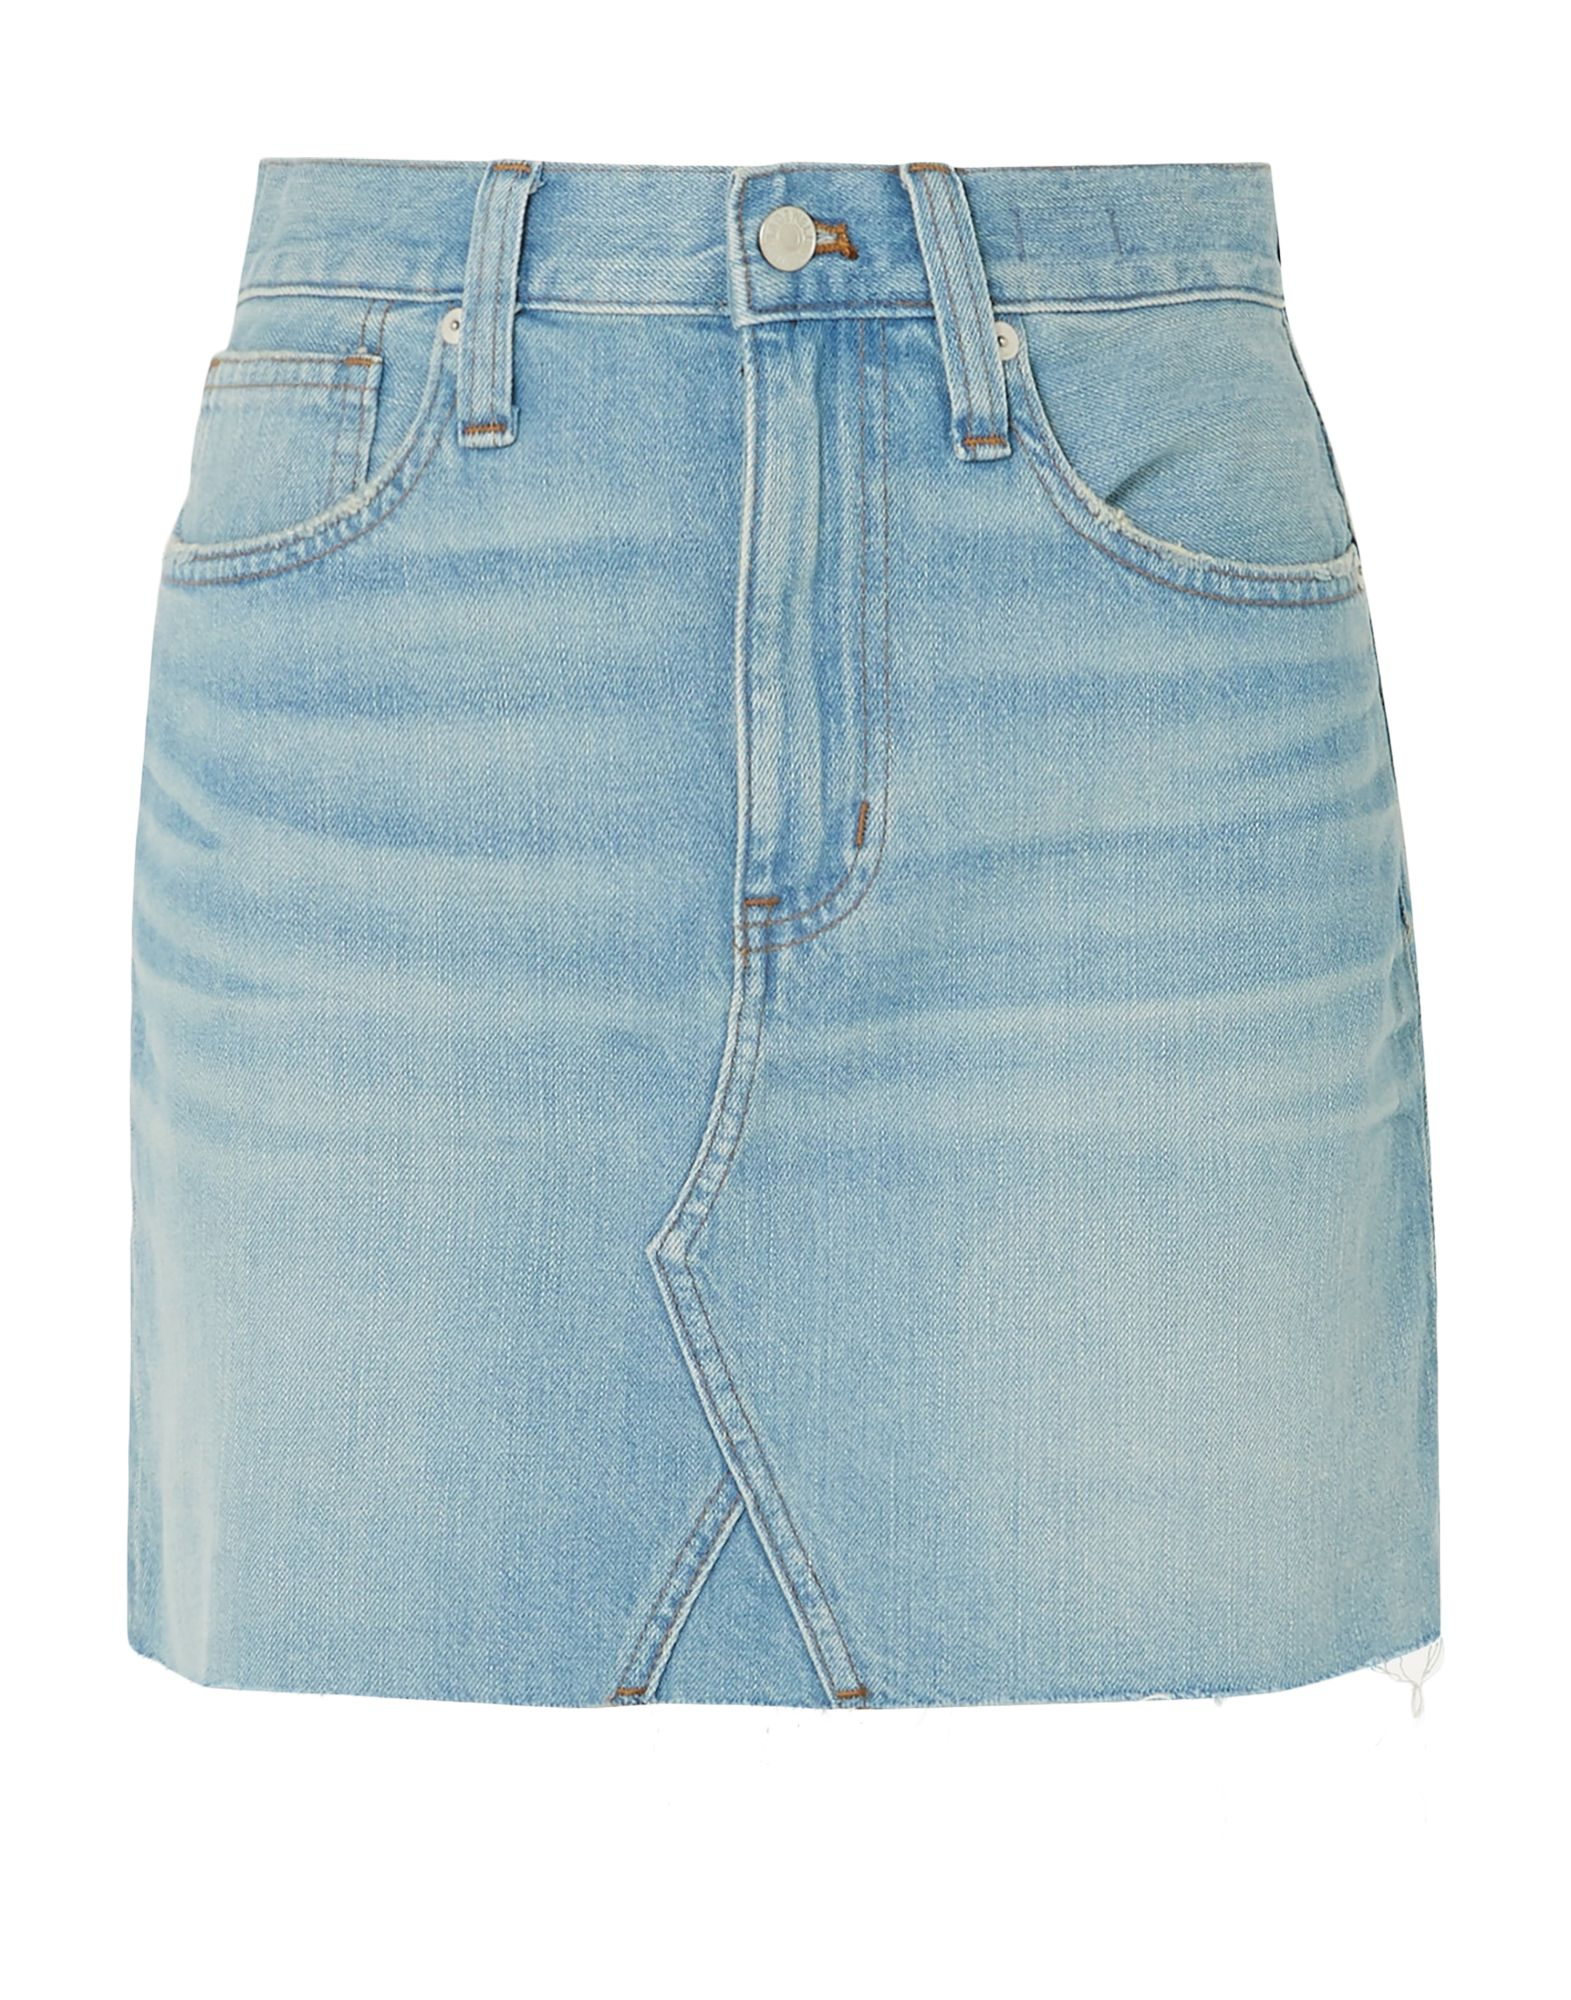 MADEWELL Denim skirts. denim, no appliqués, solid color, light wash, multipockets, button, zip, front closure. 100% Cotton